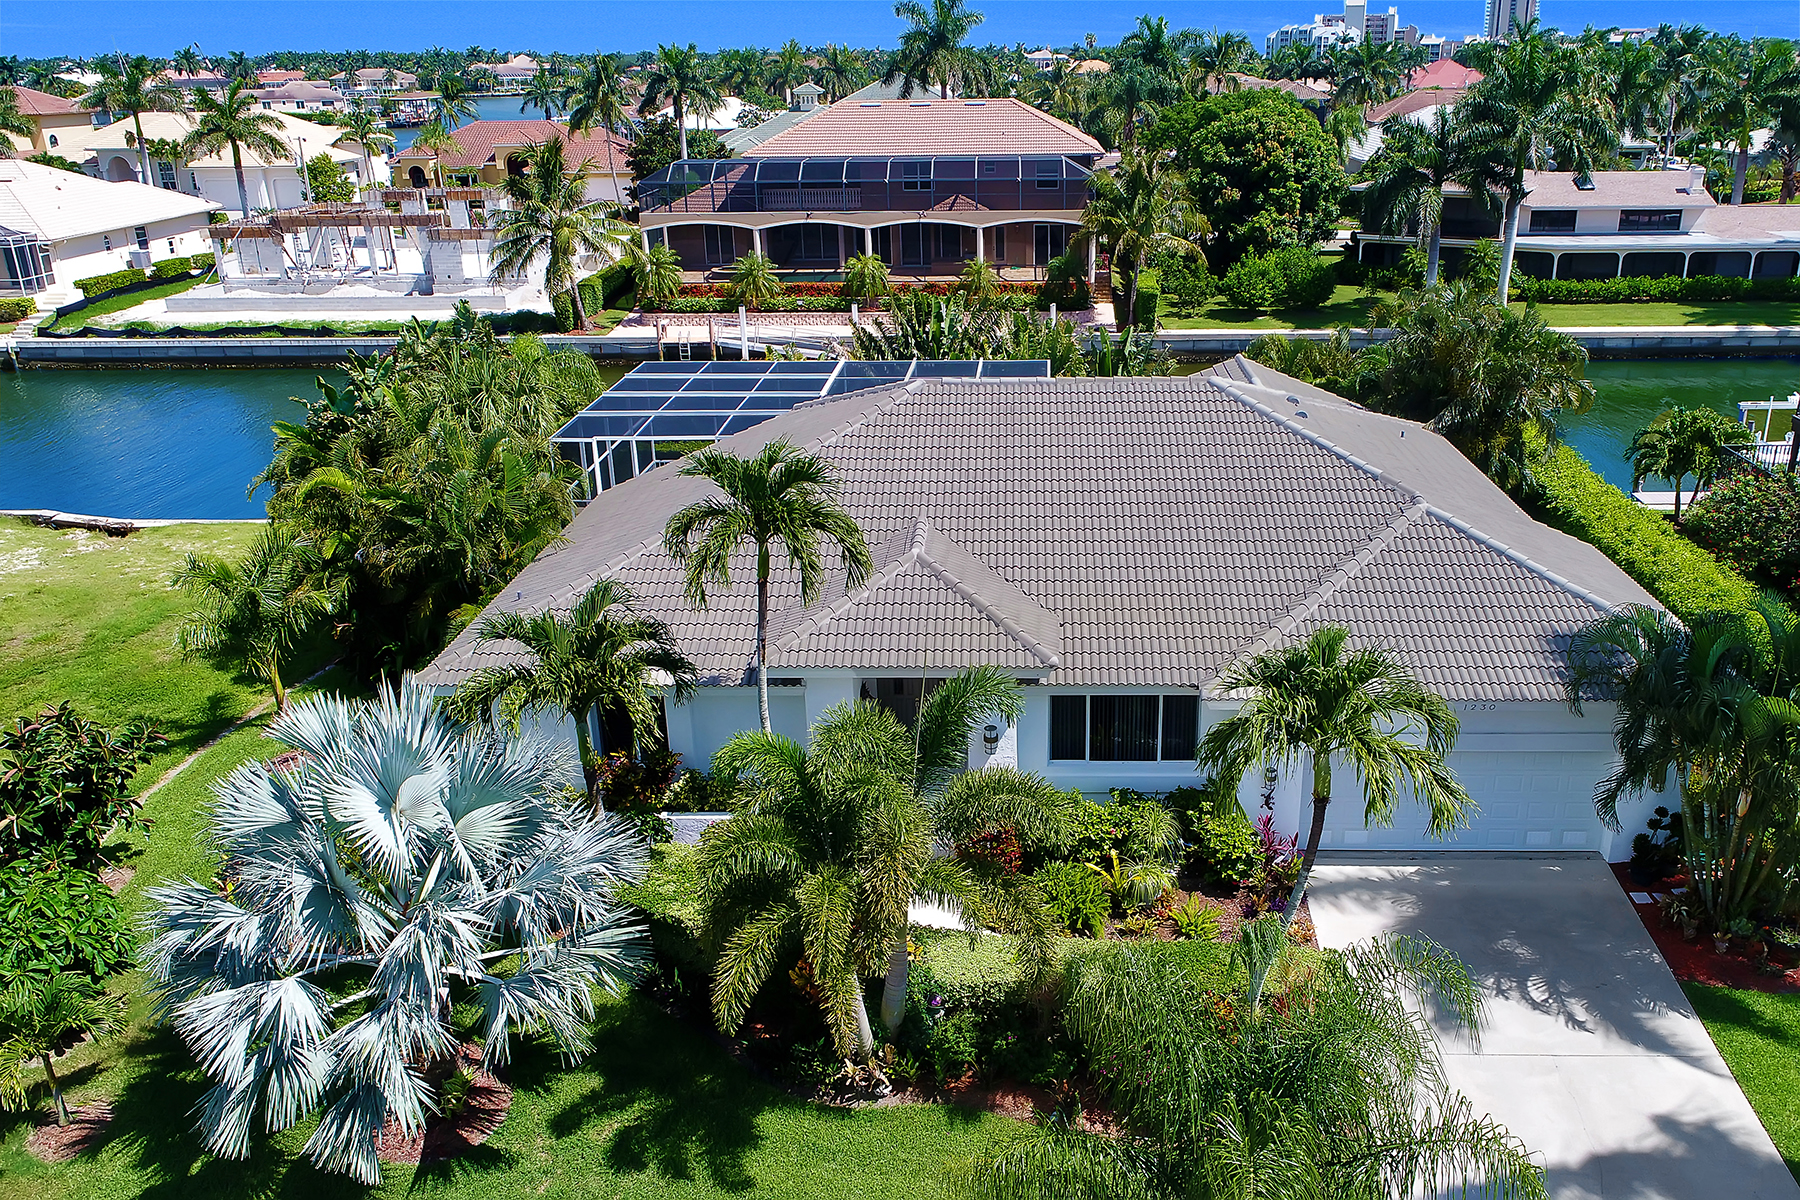 Single Family Home for Sale at MARCO ISLAND 1230 Osprey Ct, Marco Island, Florida 34145 United States